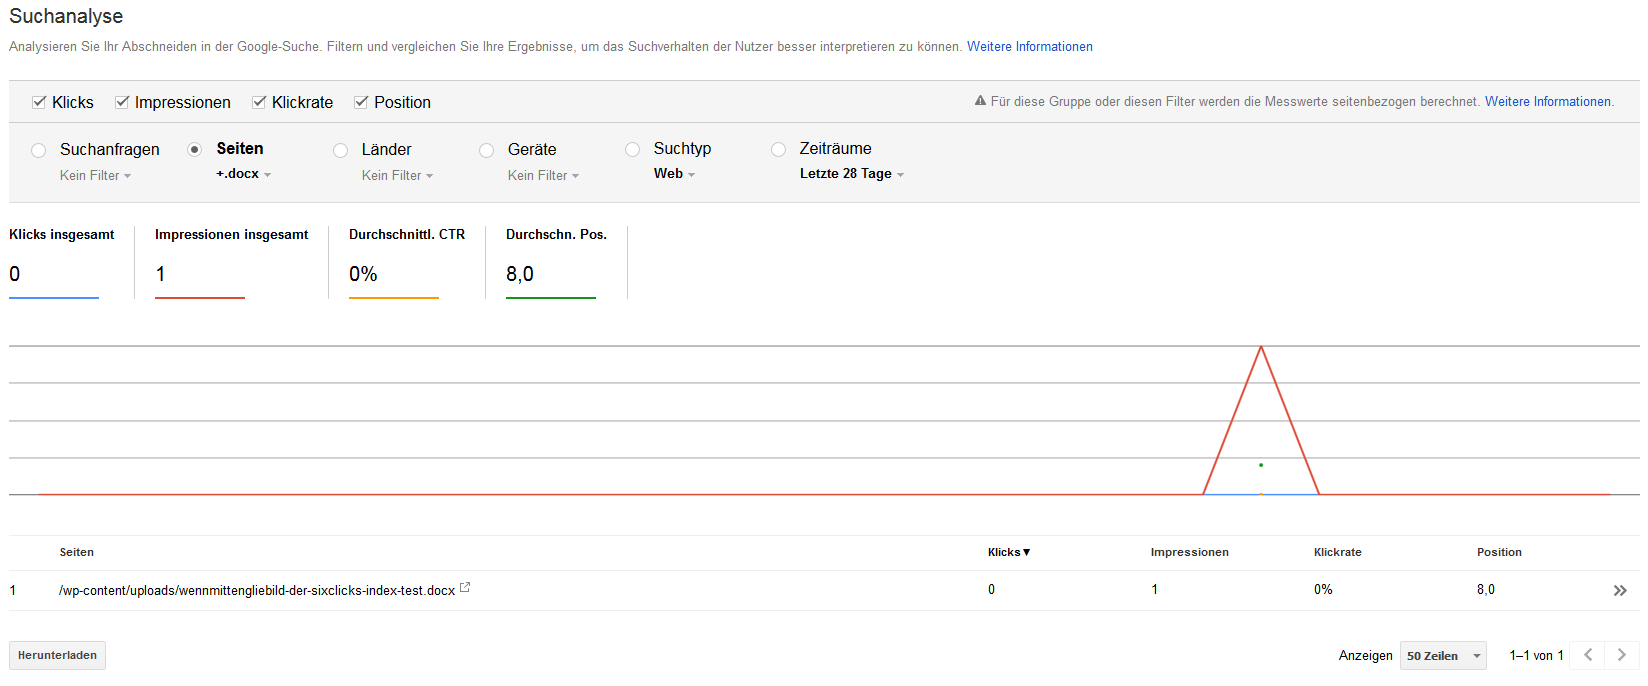 Google Search Console Screenshot mit Suchanalyse hinsichtlich Word-Dokumente